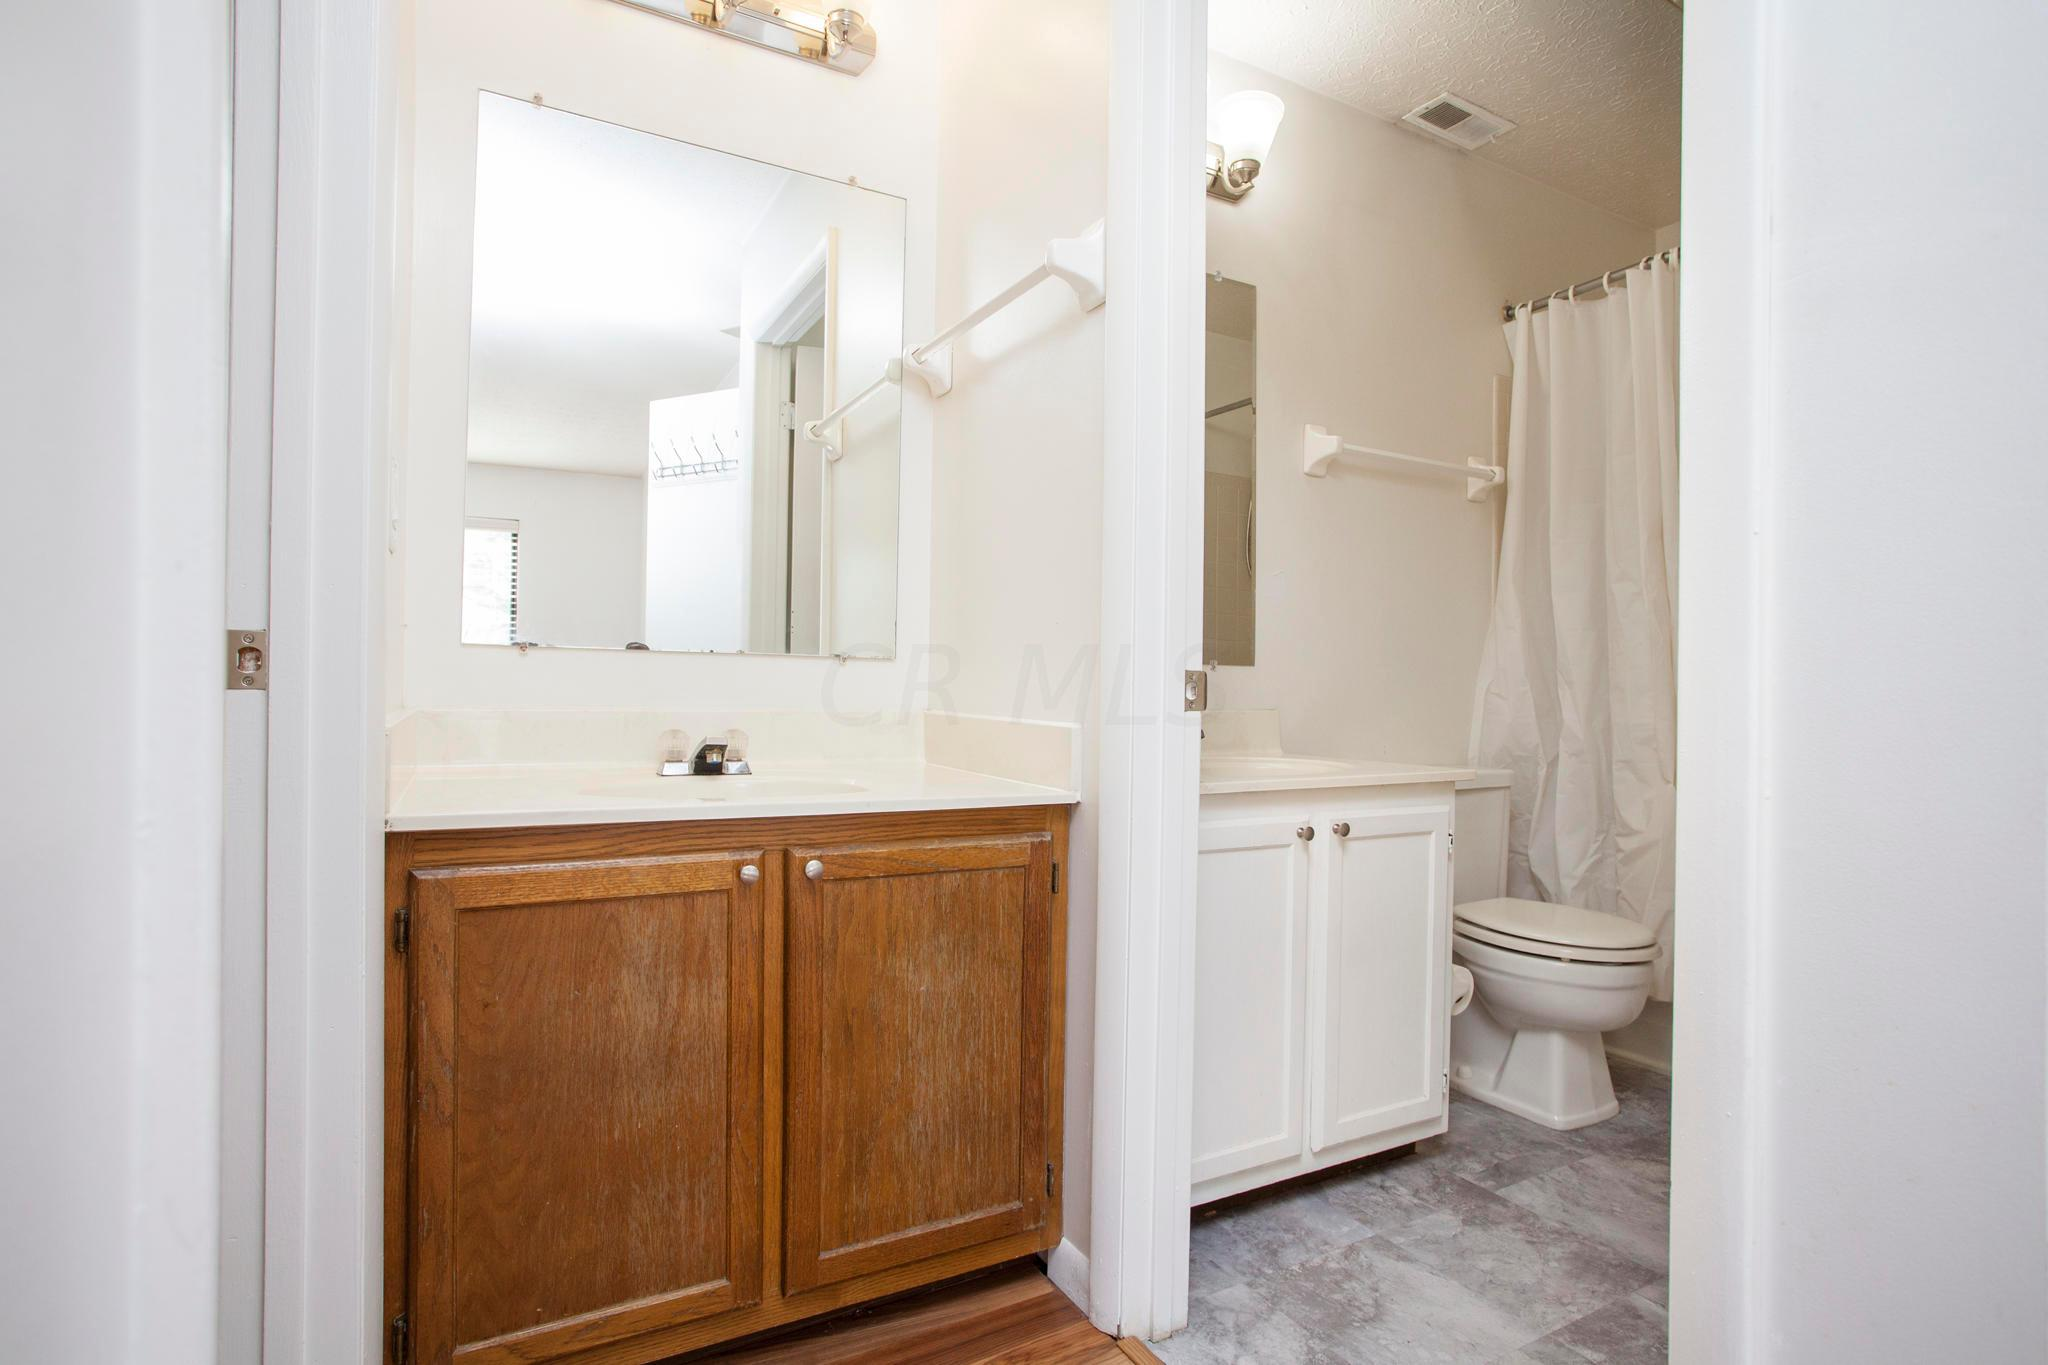 2271 Hedgerow Road, Columbus, Ohio 43220, 2 Bedrooms Bedrooms, ,1 BathroomBathrooms,Residential,For Sale,Hedgerow,220038969